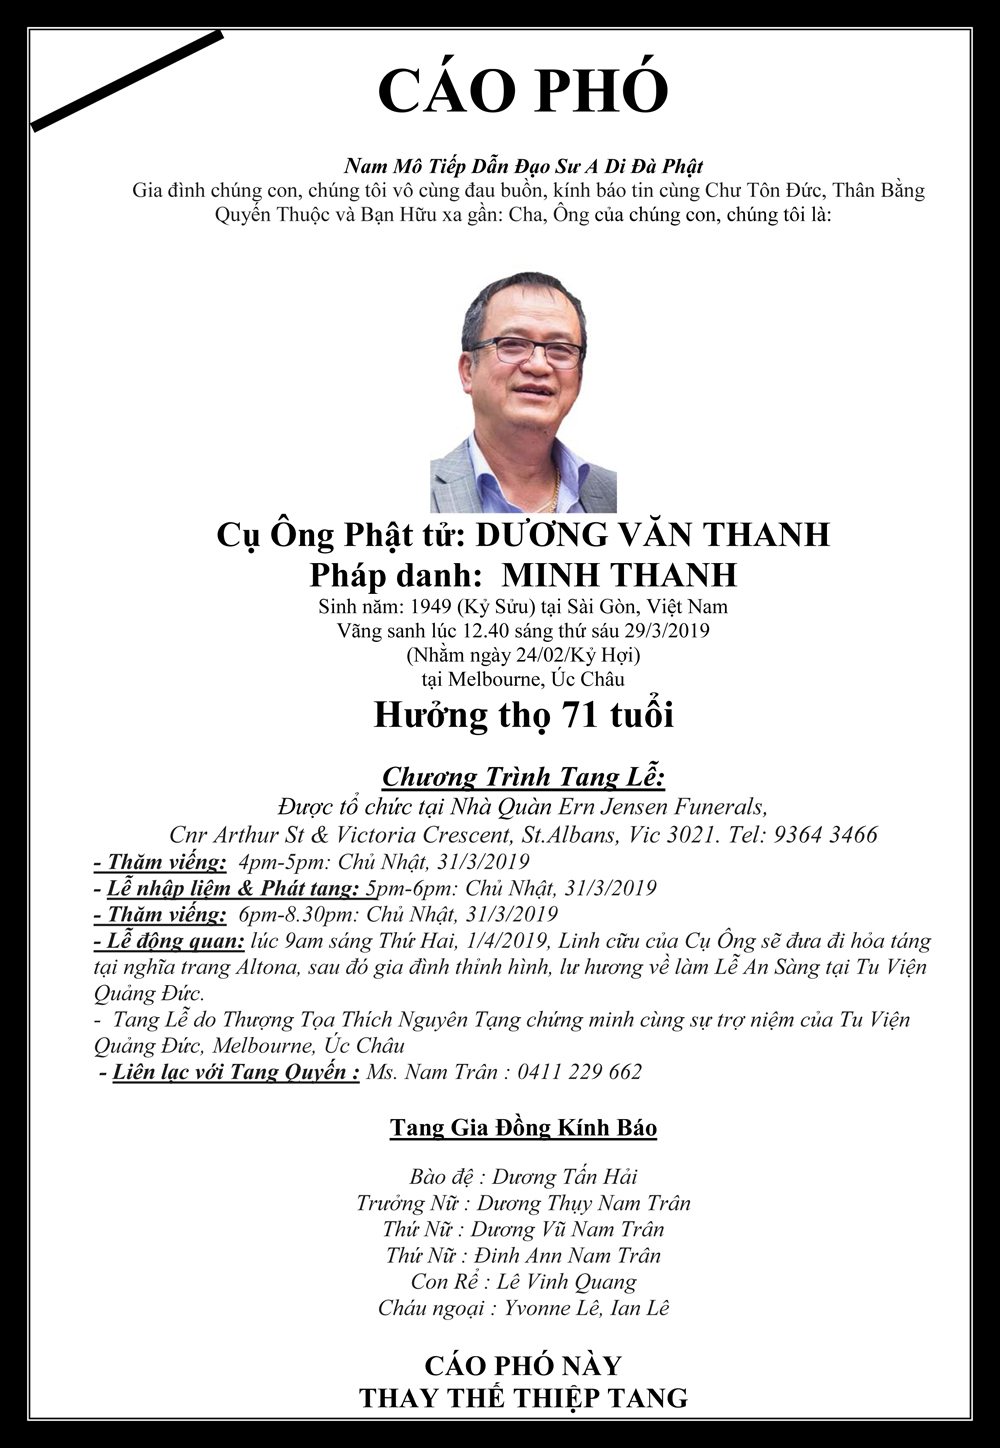 Duong van Thanh_Minh Thanh